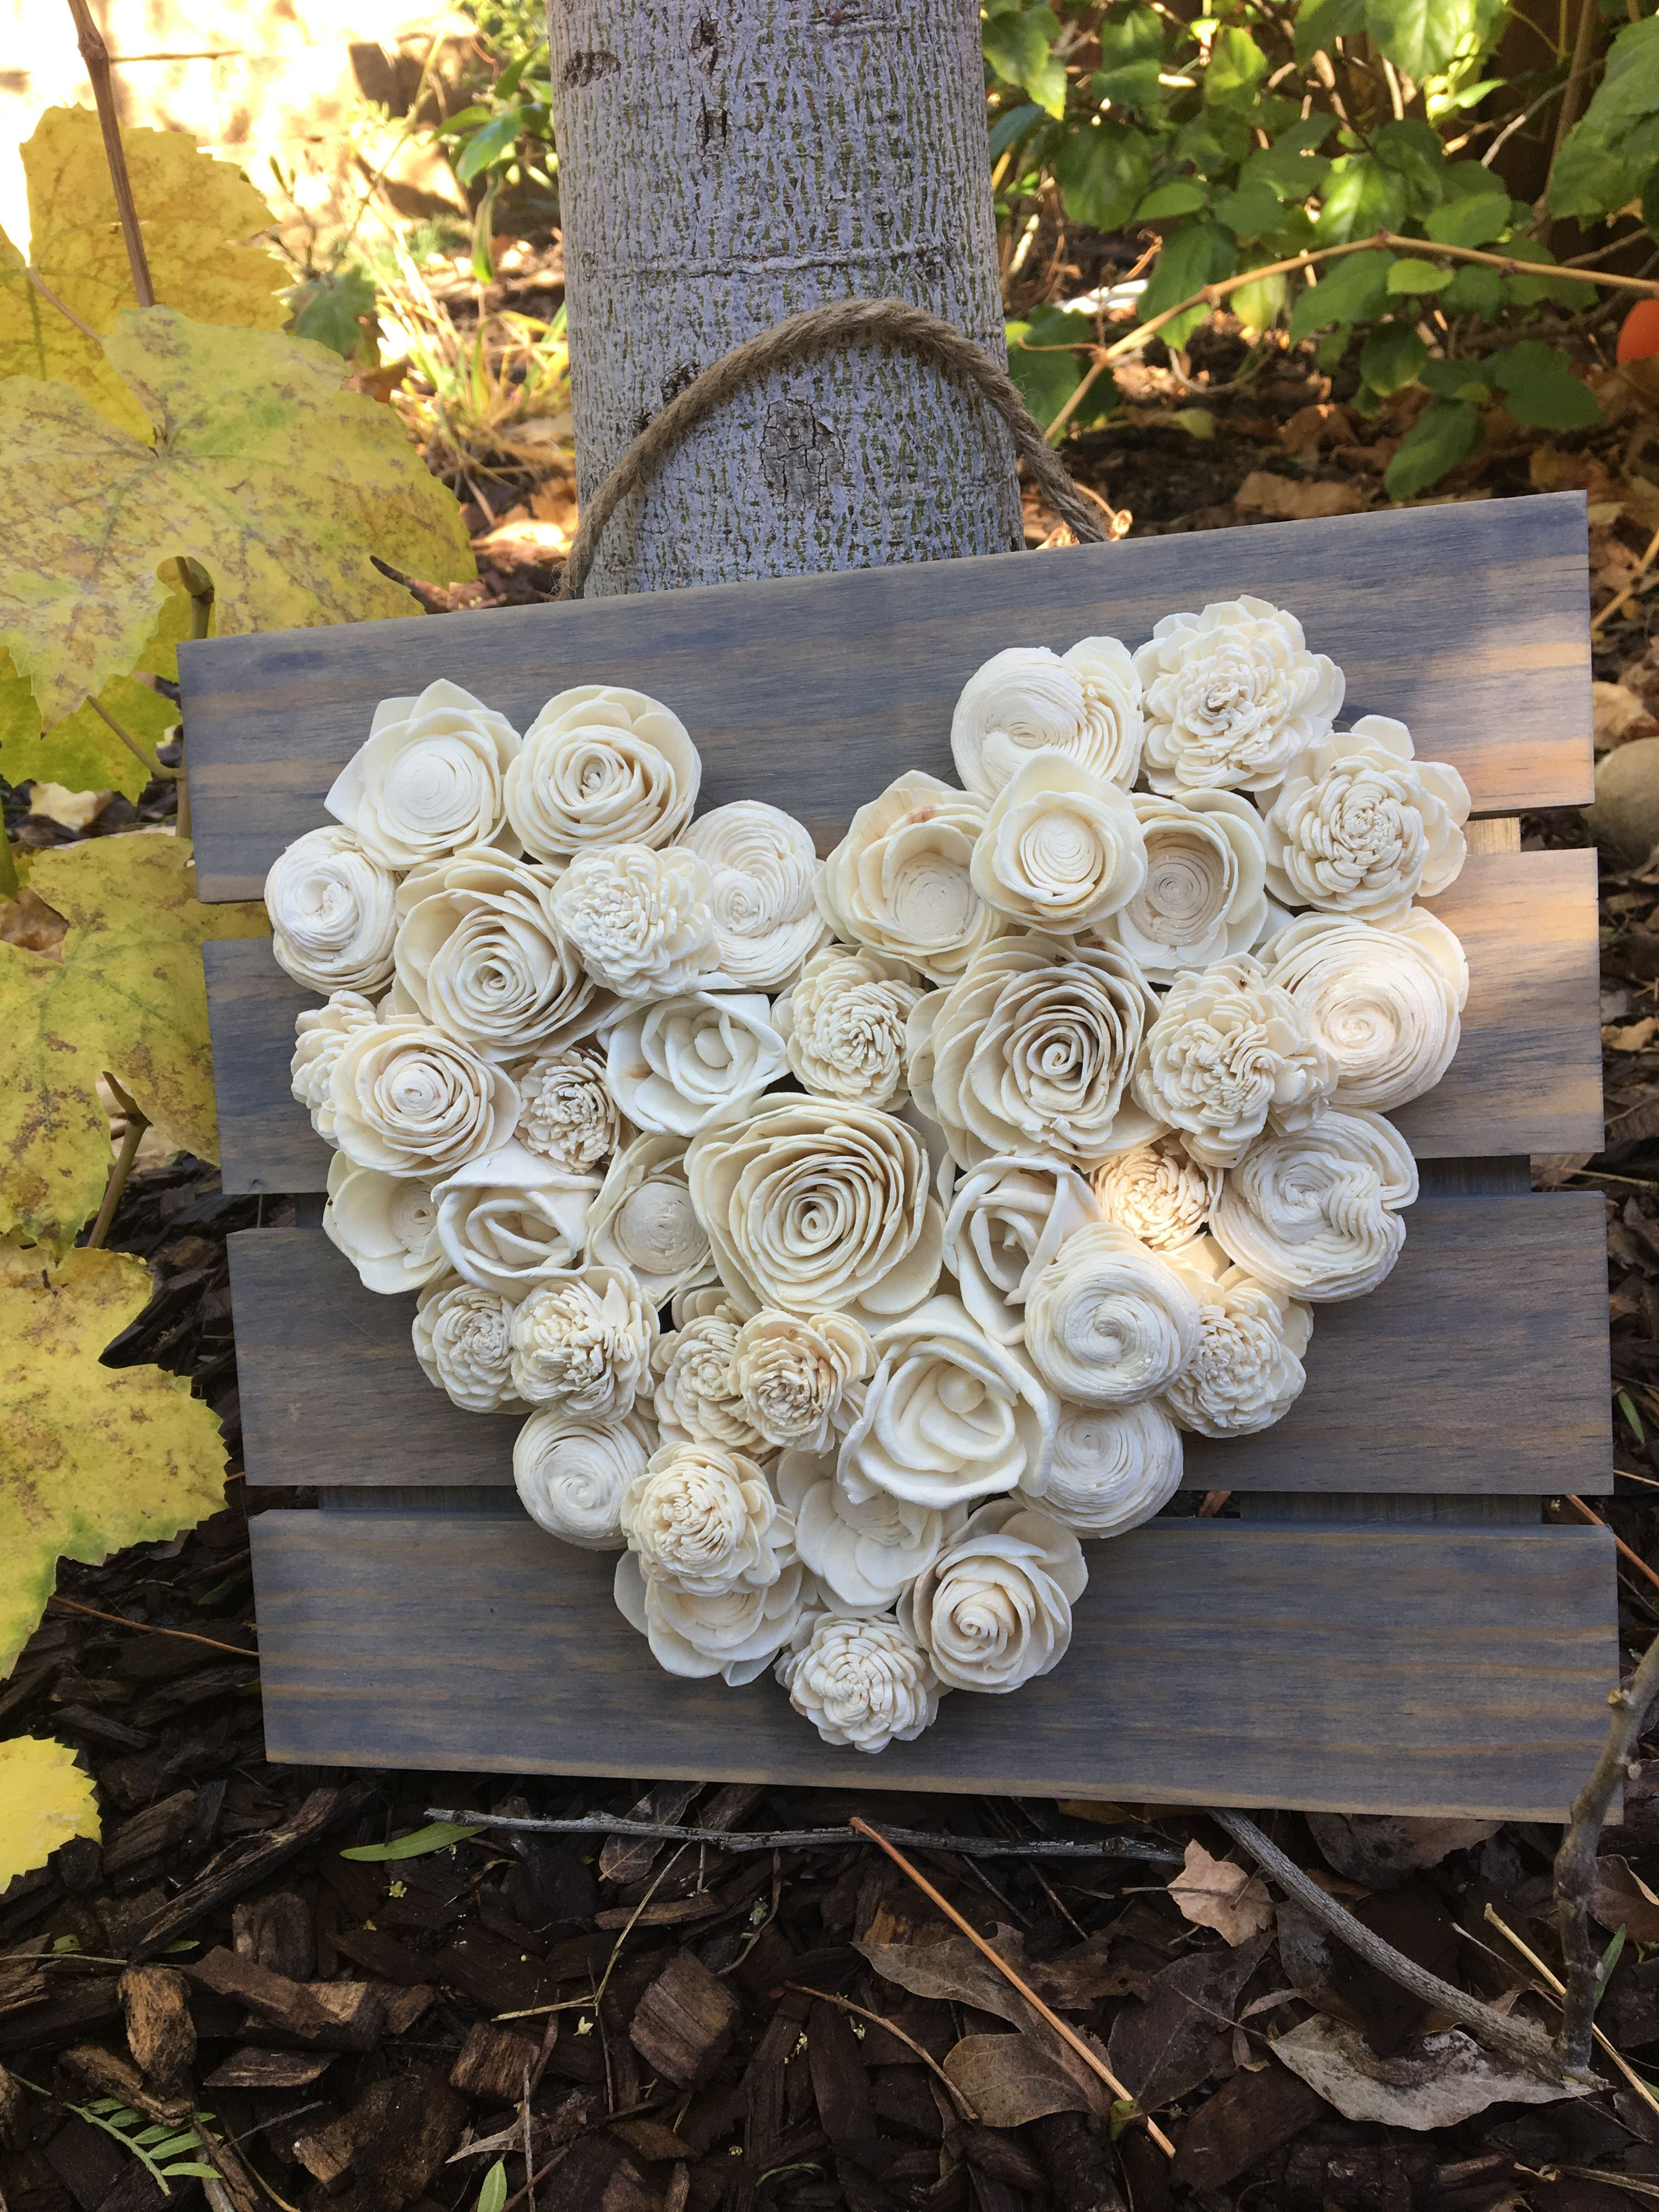 All White Wood Flower Heart Board With Gray Backing Made By Luv2diy Com Wood Flowers Burlap Flowers Diy Craft Kits